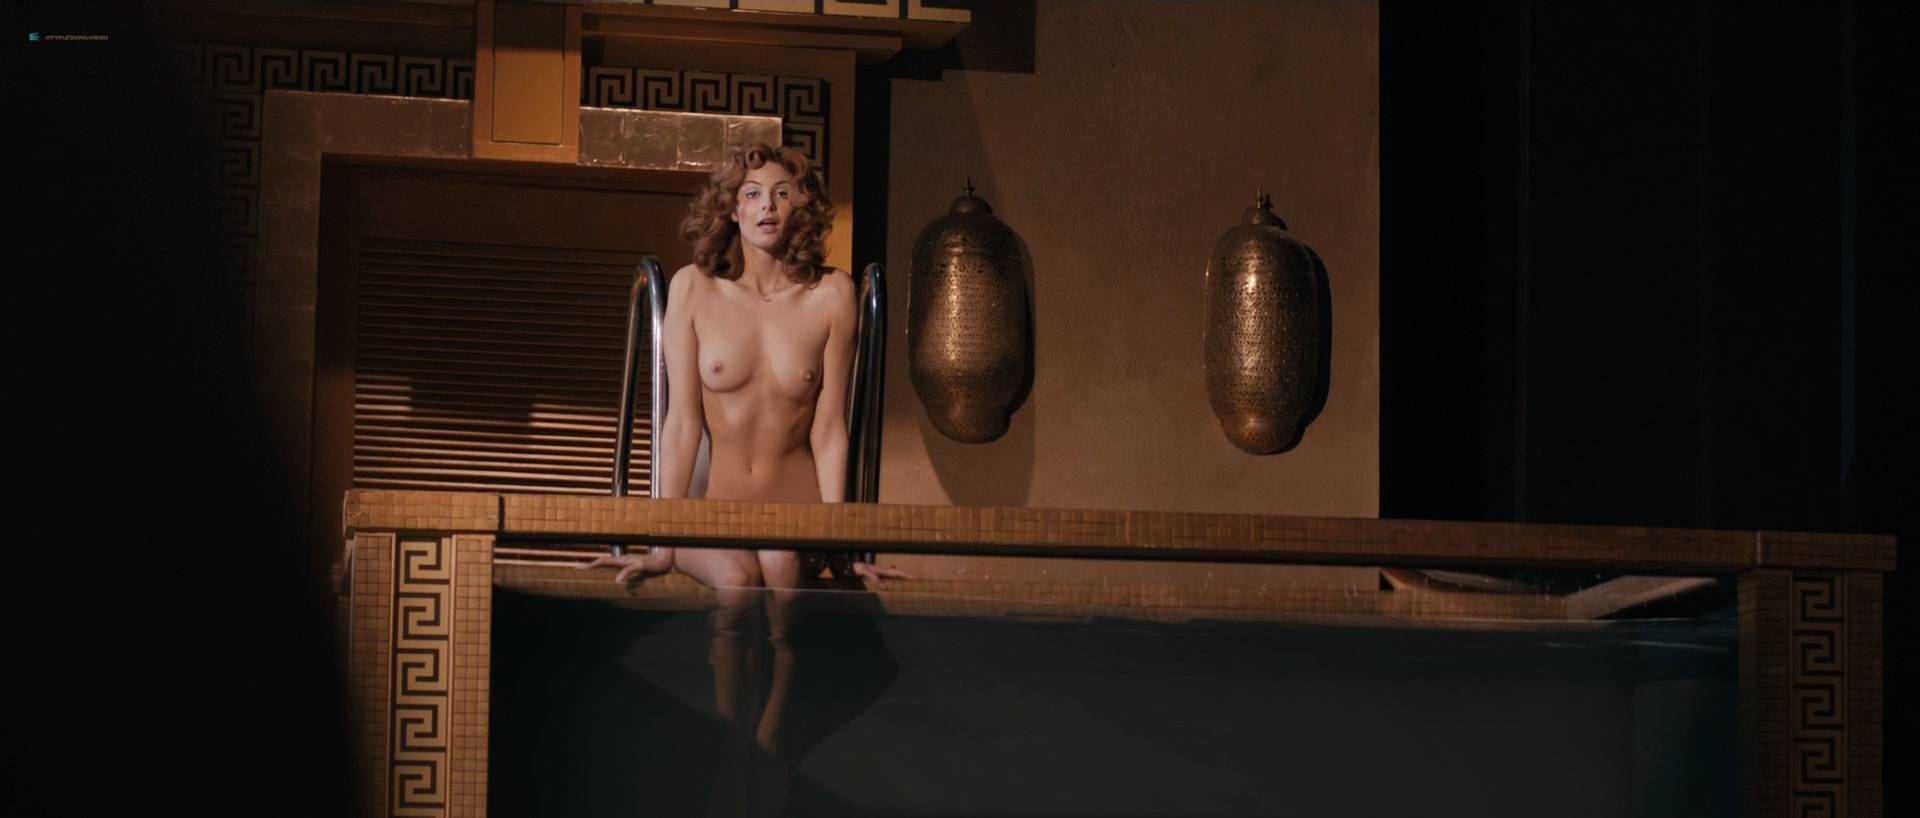 Anna Friel nude topless Tamsin Egerton nude various actress nude full frontal - The Look of Love (2013) HD 1080p (13)